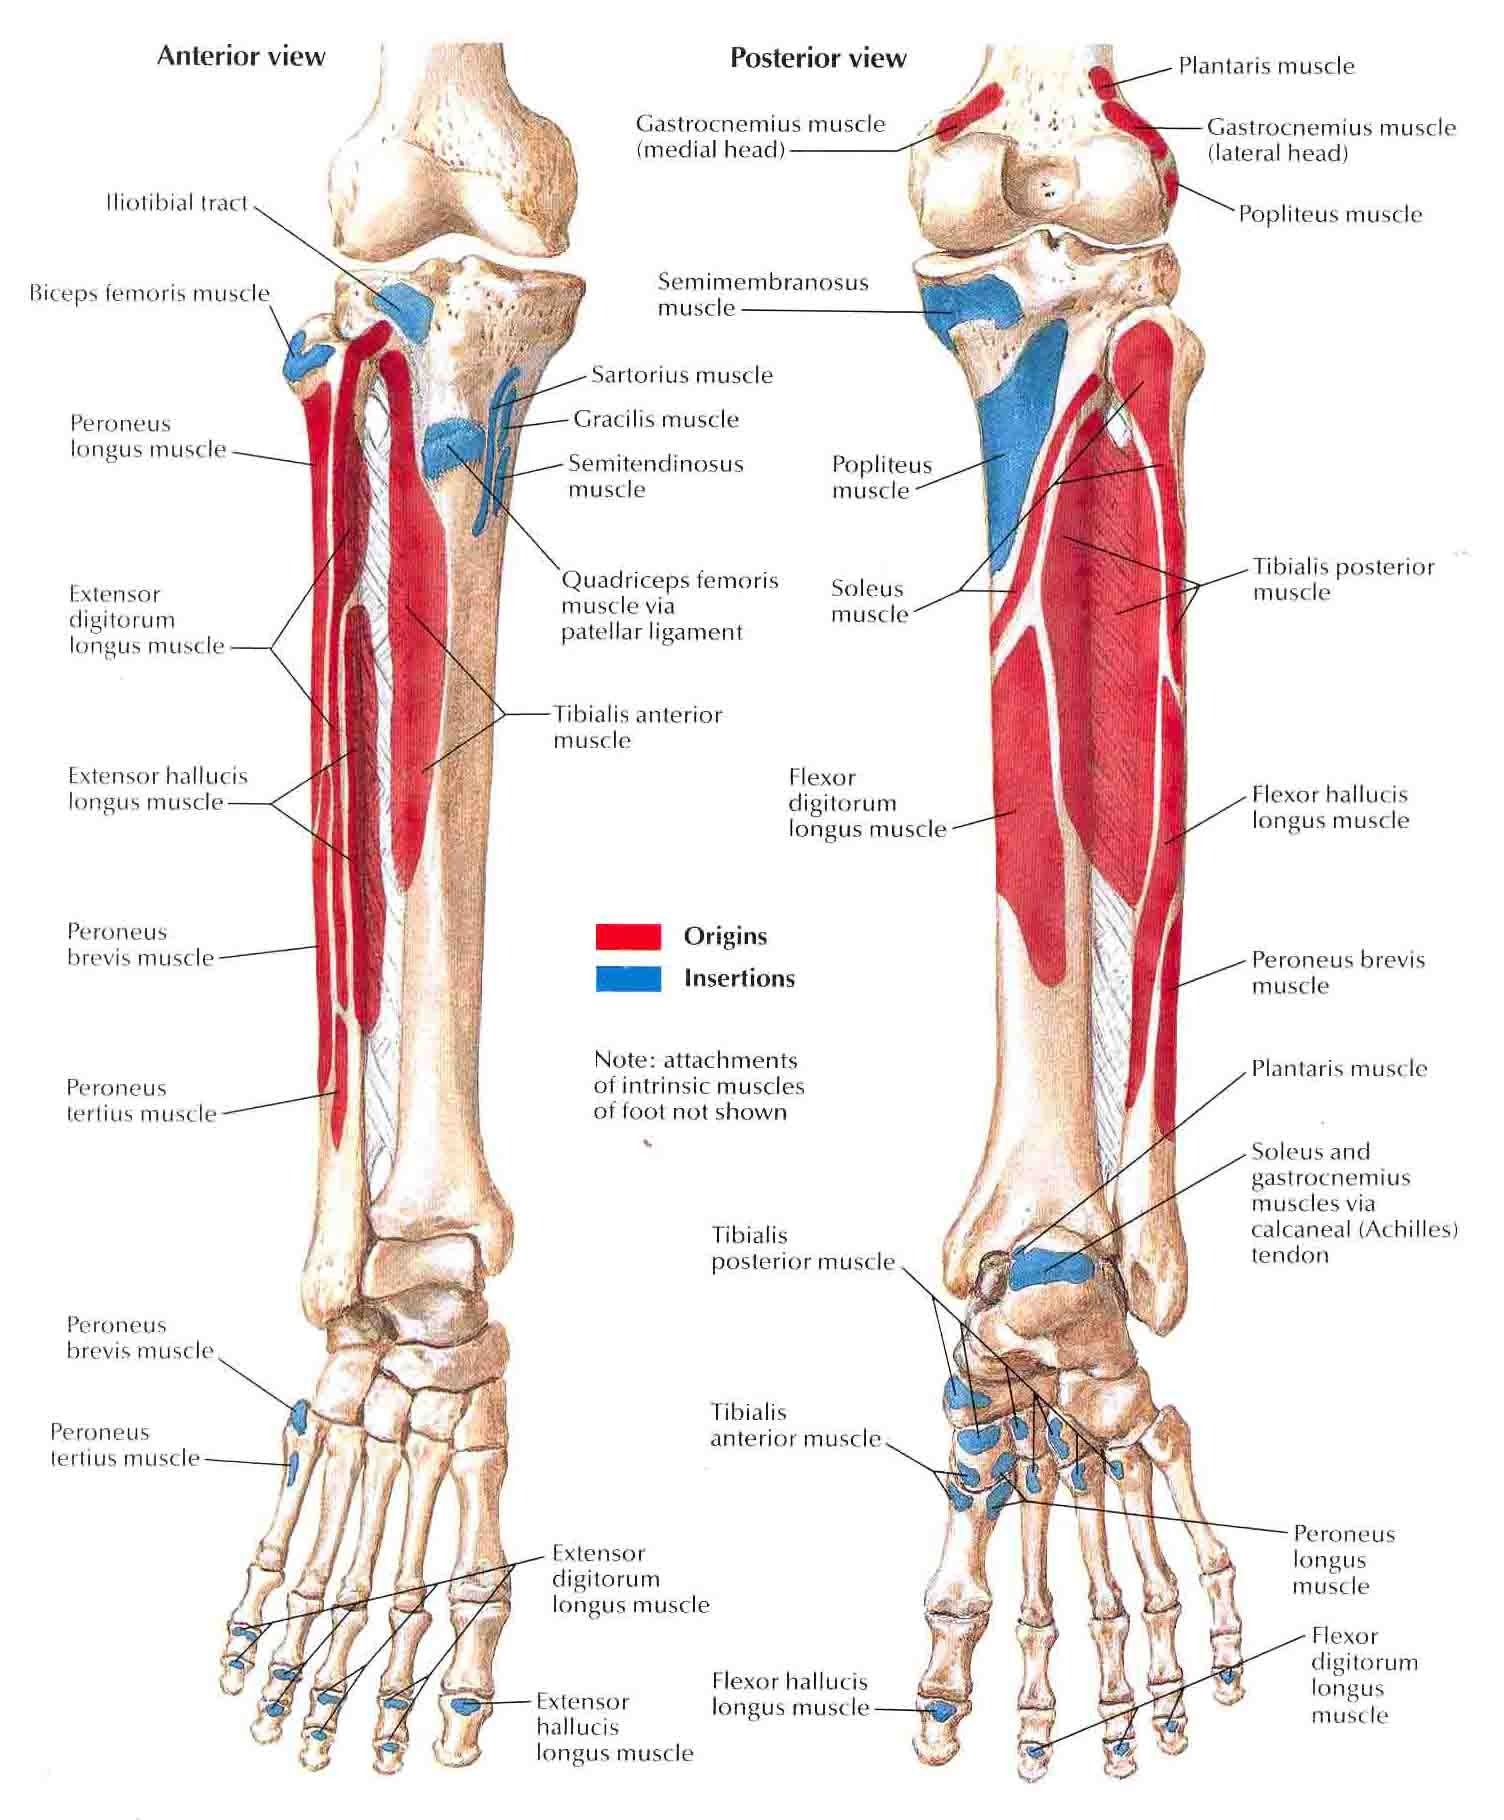 Pin By Hailey Lance On School Pinterest Lower Limb Muscles